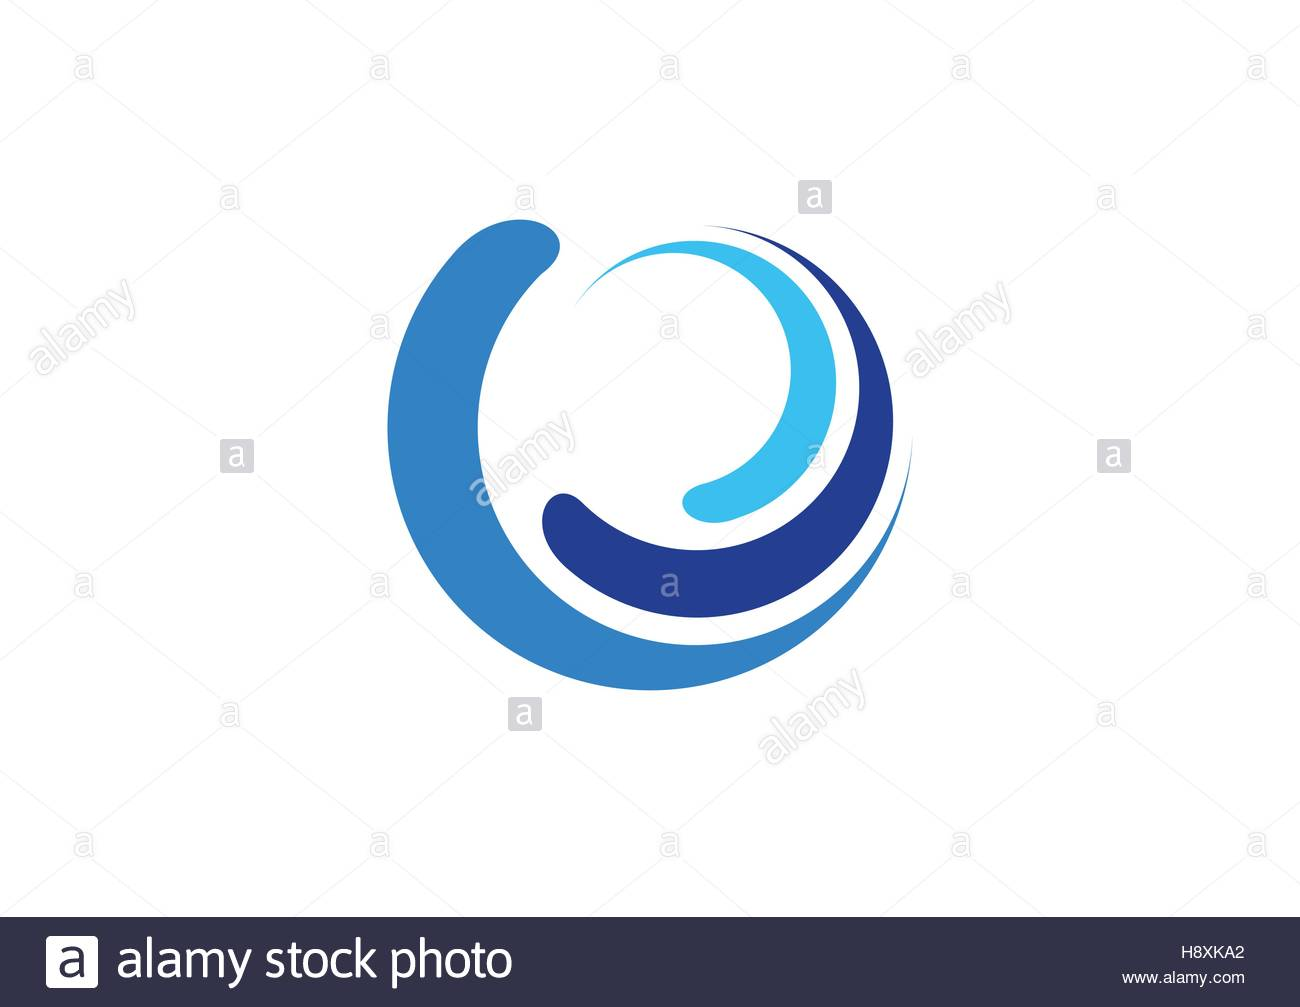 1300x1007 Circle Waves Logo, Sphere Blue Splash Water Symbol, Swirl Wind